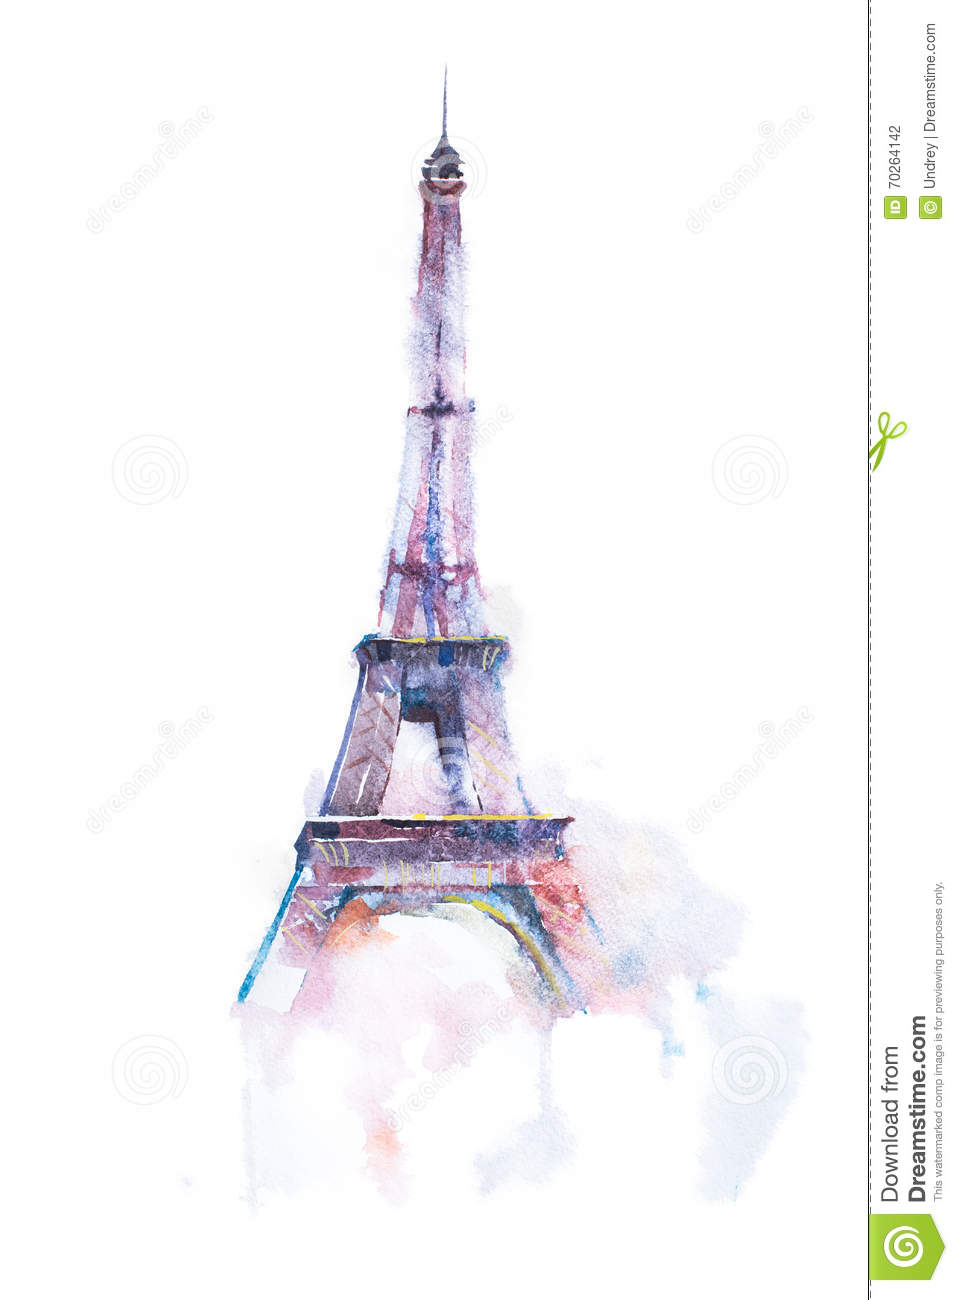 Watercolor drawing of eiffel tower in paris on white background